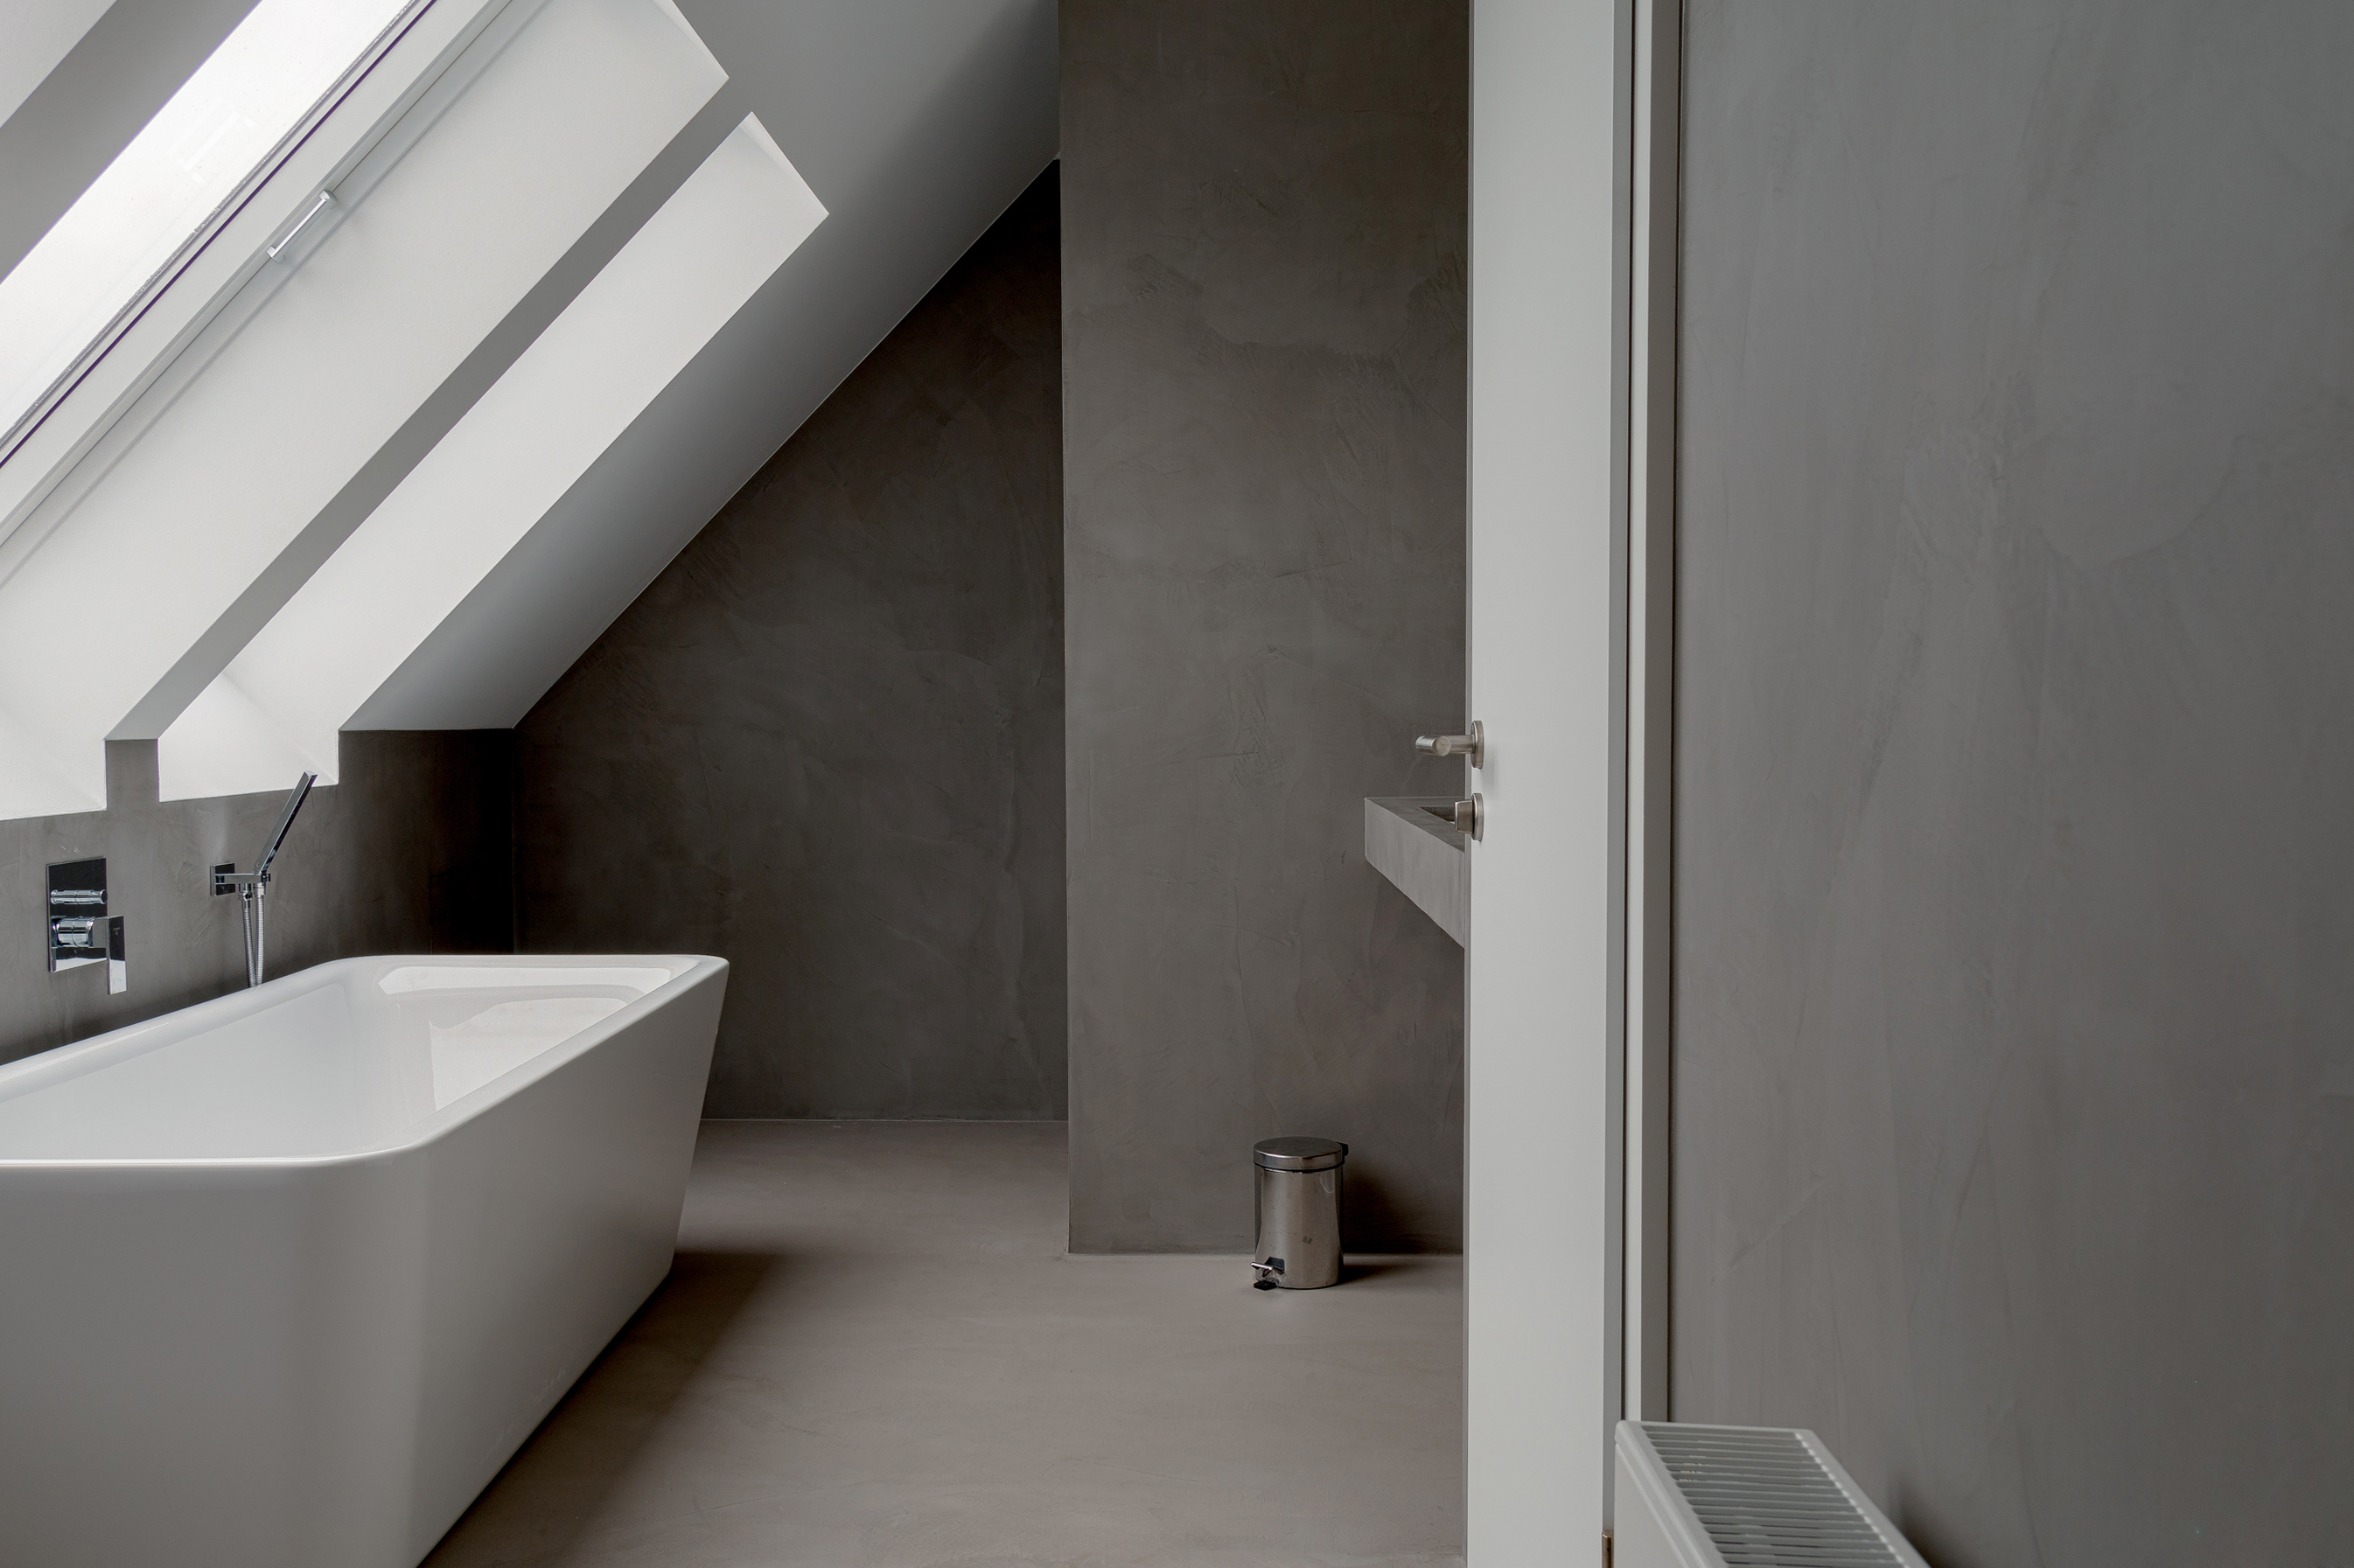 Bathroom with Topciment grey microcement